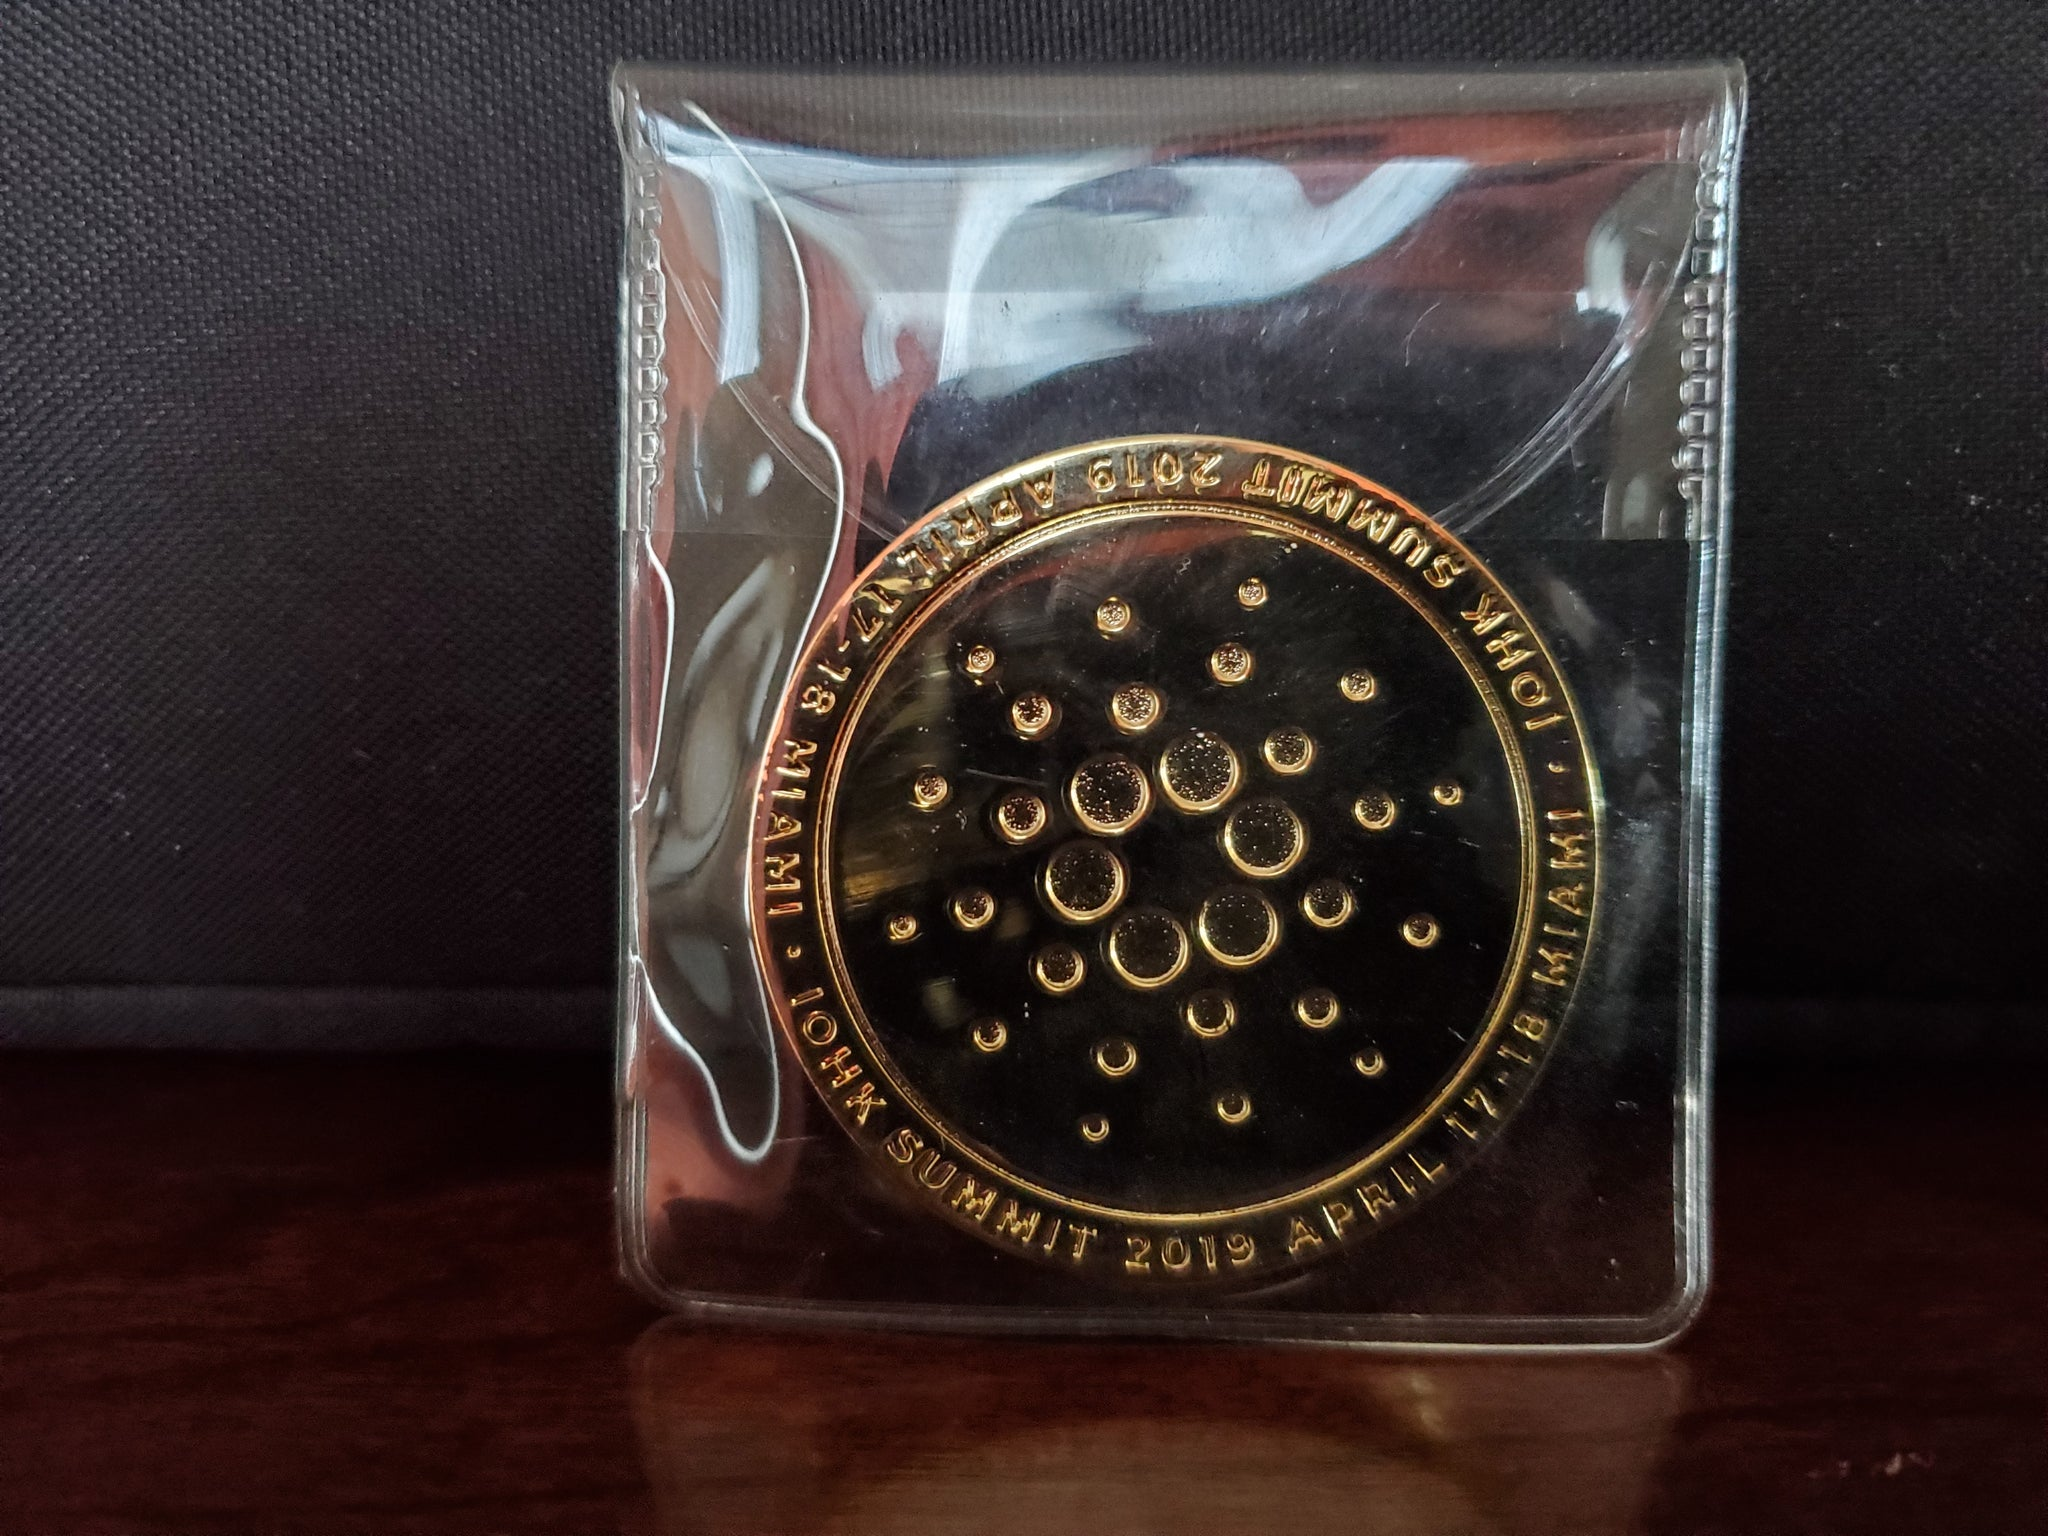 **SOLD OUT ** Limited Edition IOHK Summit coin